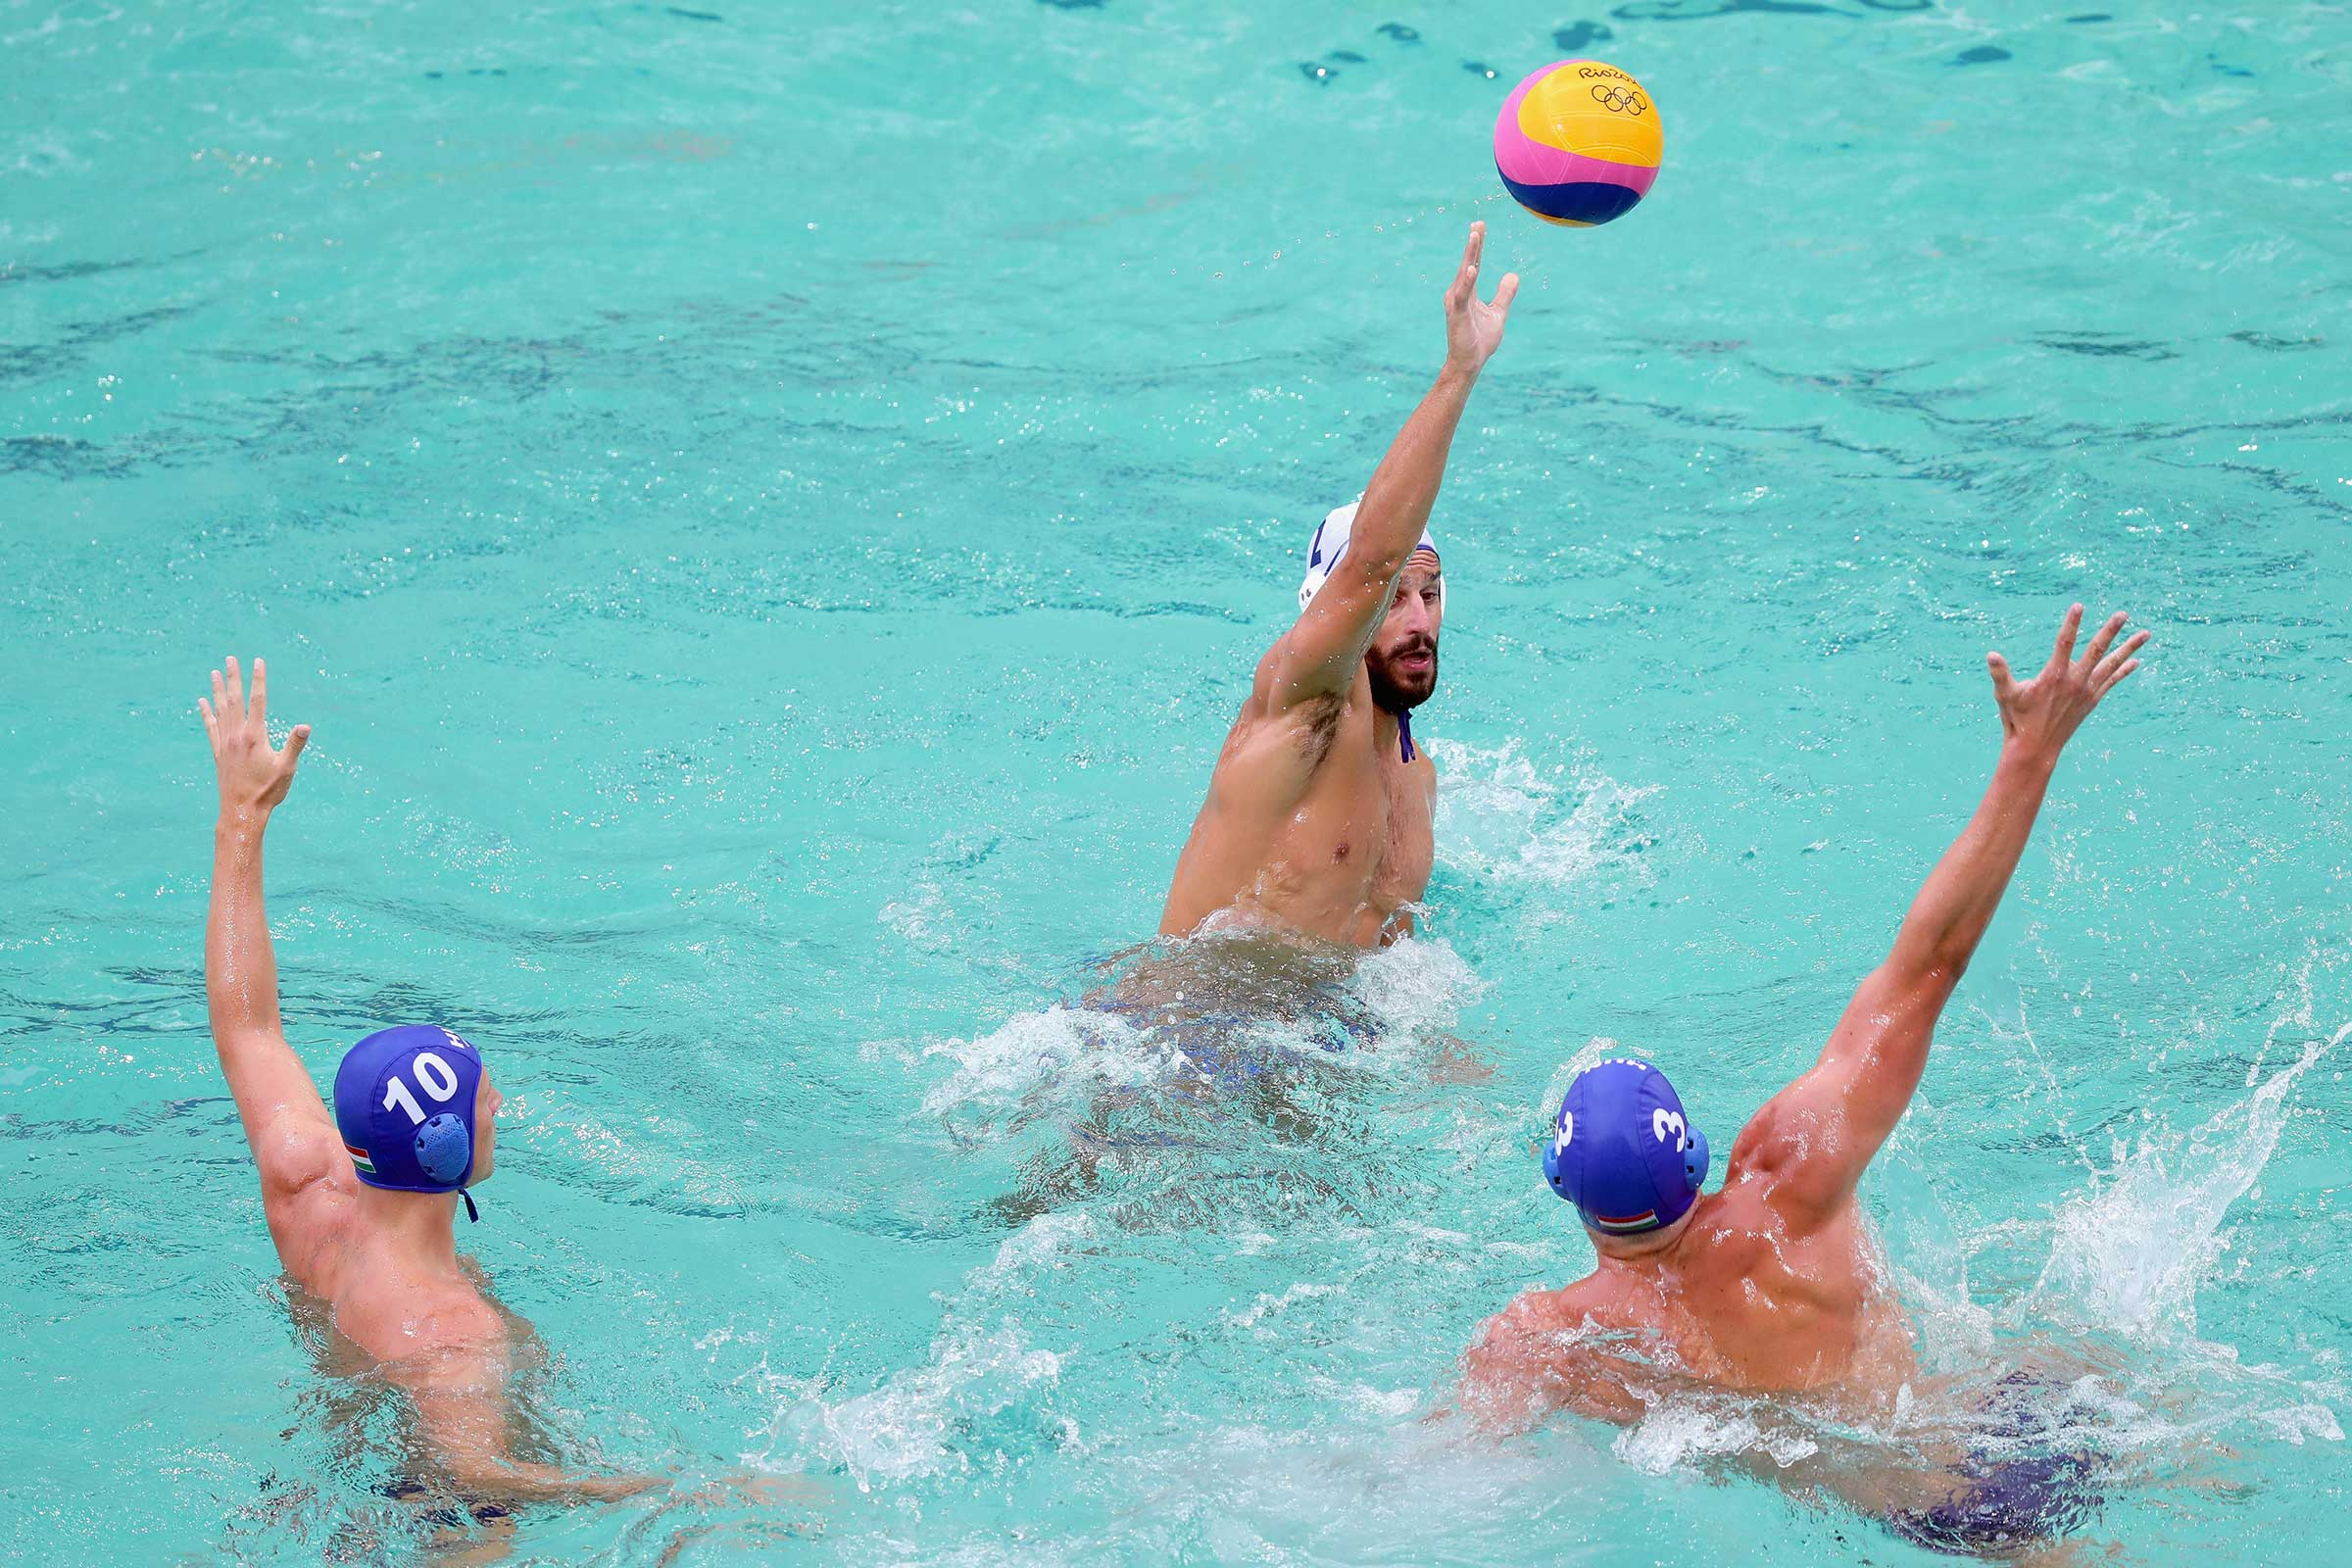 Men's Waterpolo - Preliminary Round - Group A